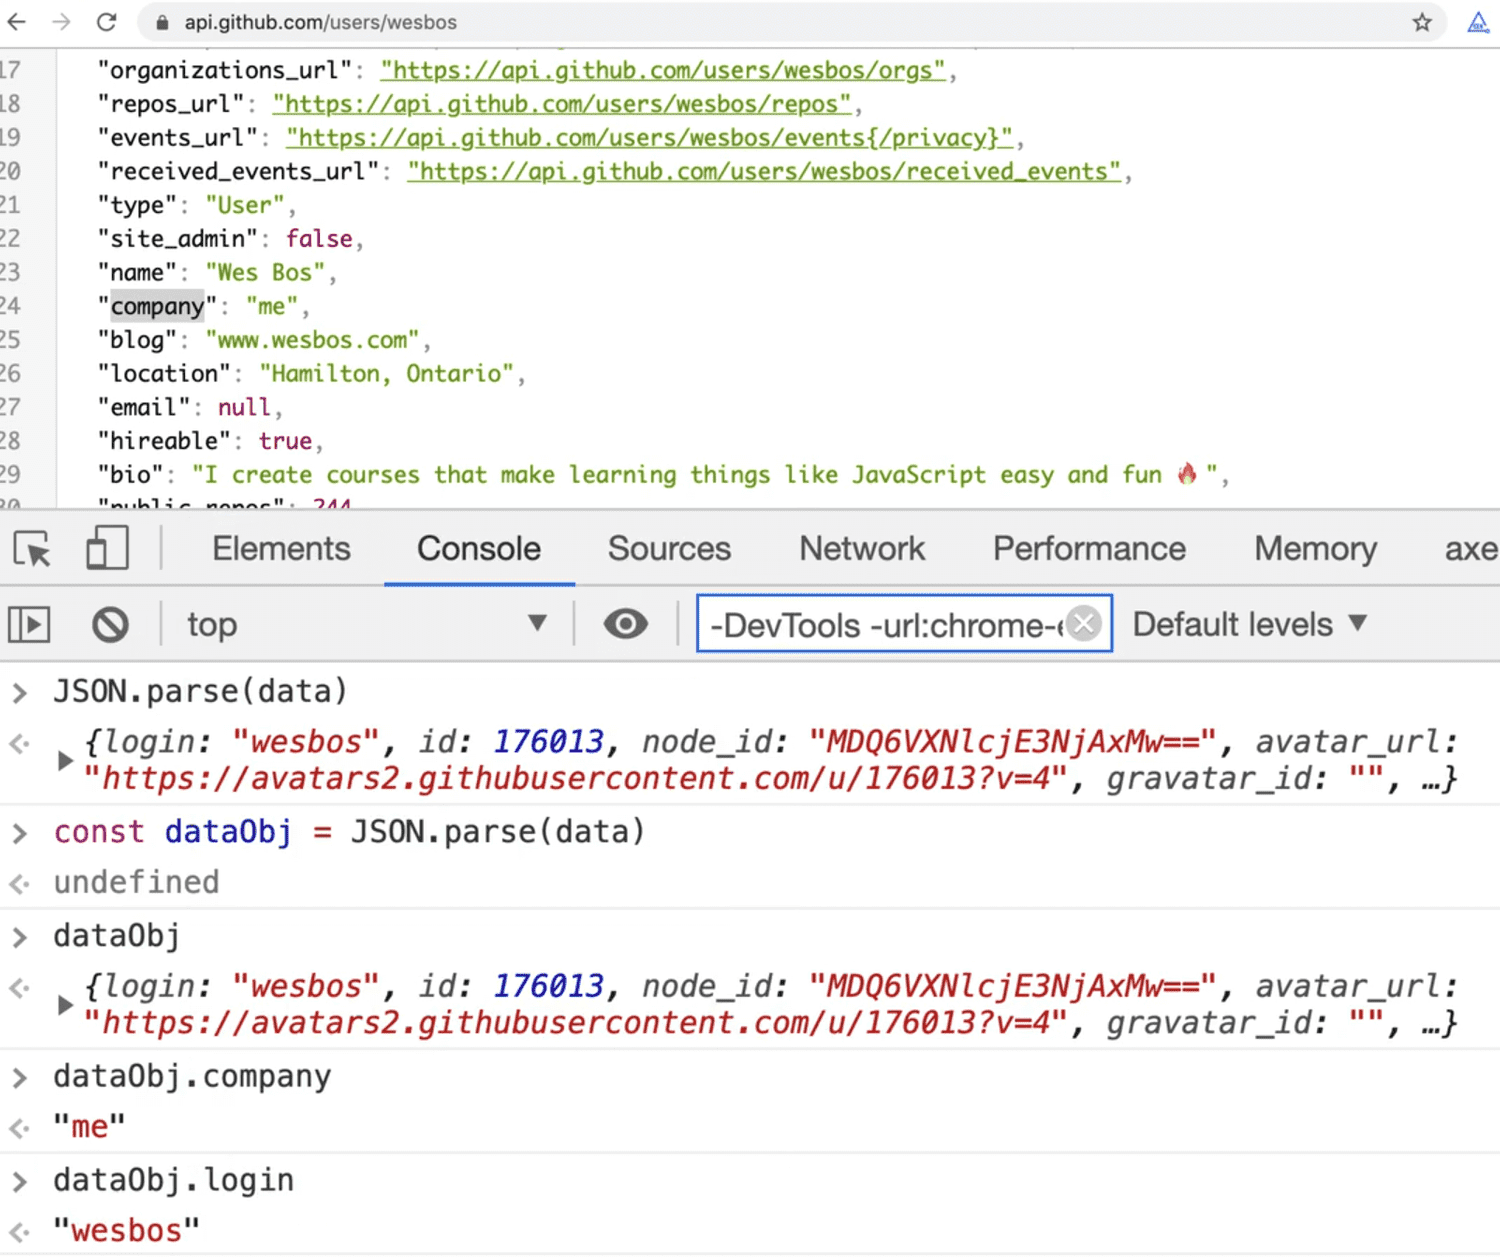 browser output showing accesing JSON object properties